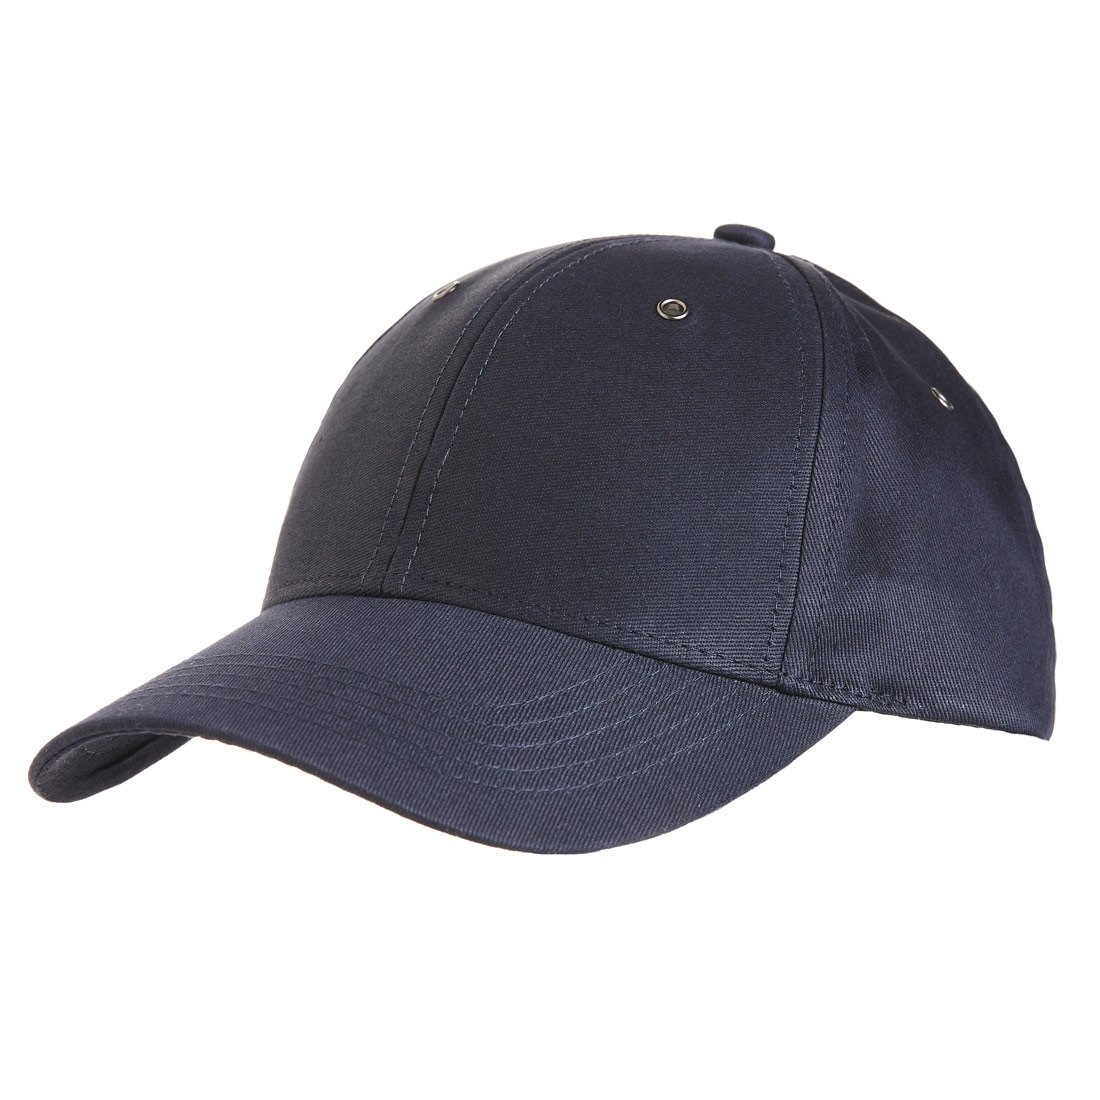 Baumwoll Golfcap Comfortable Fit Onesize